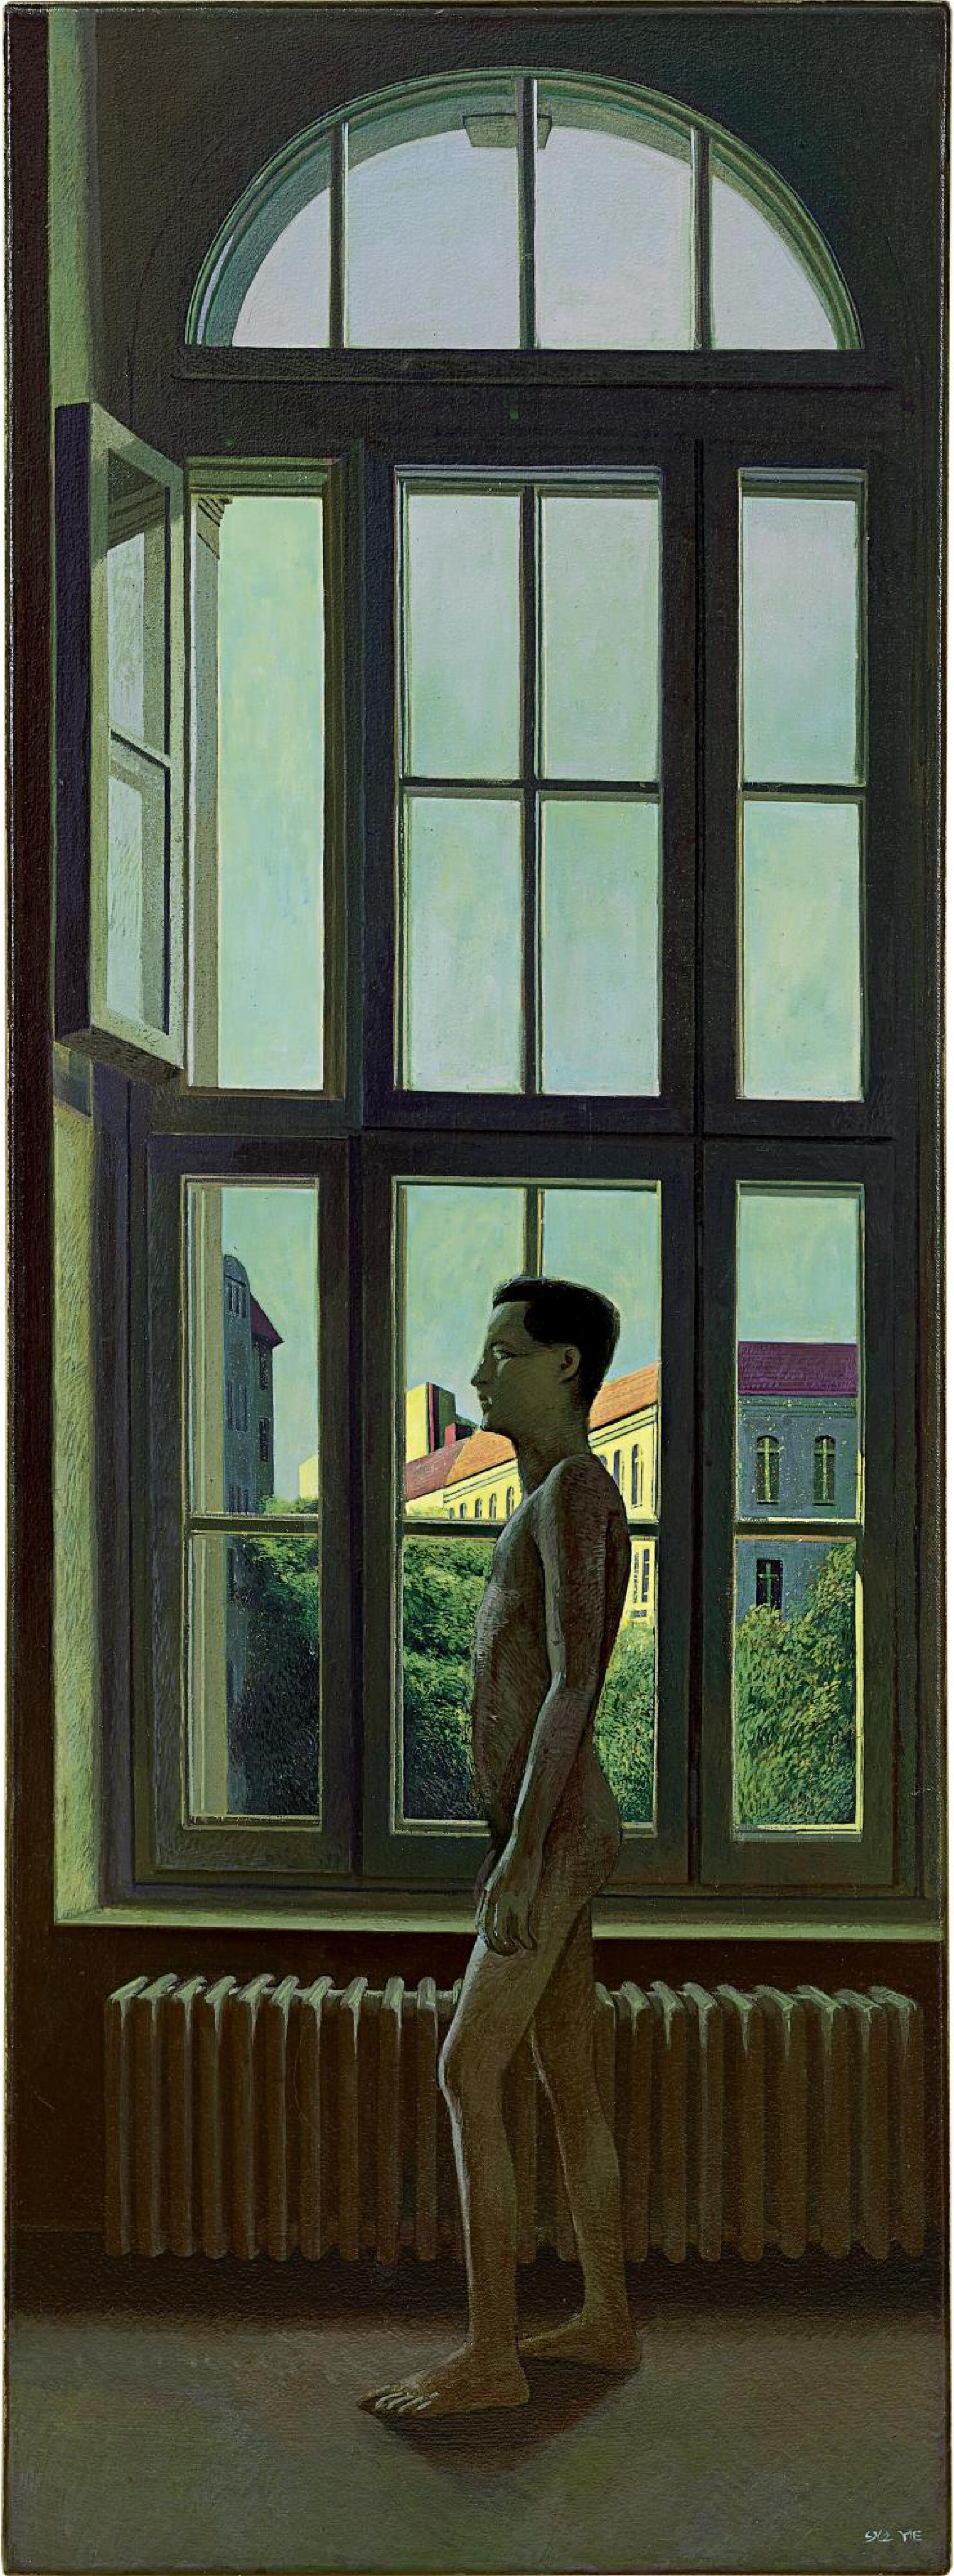 View full screen - View 1 of Lot 594. LIU YE 劉野   RED ROOF 紅屋頂.